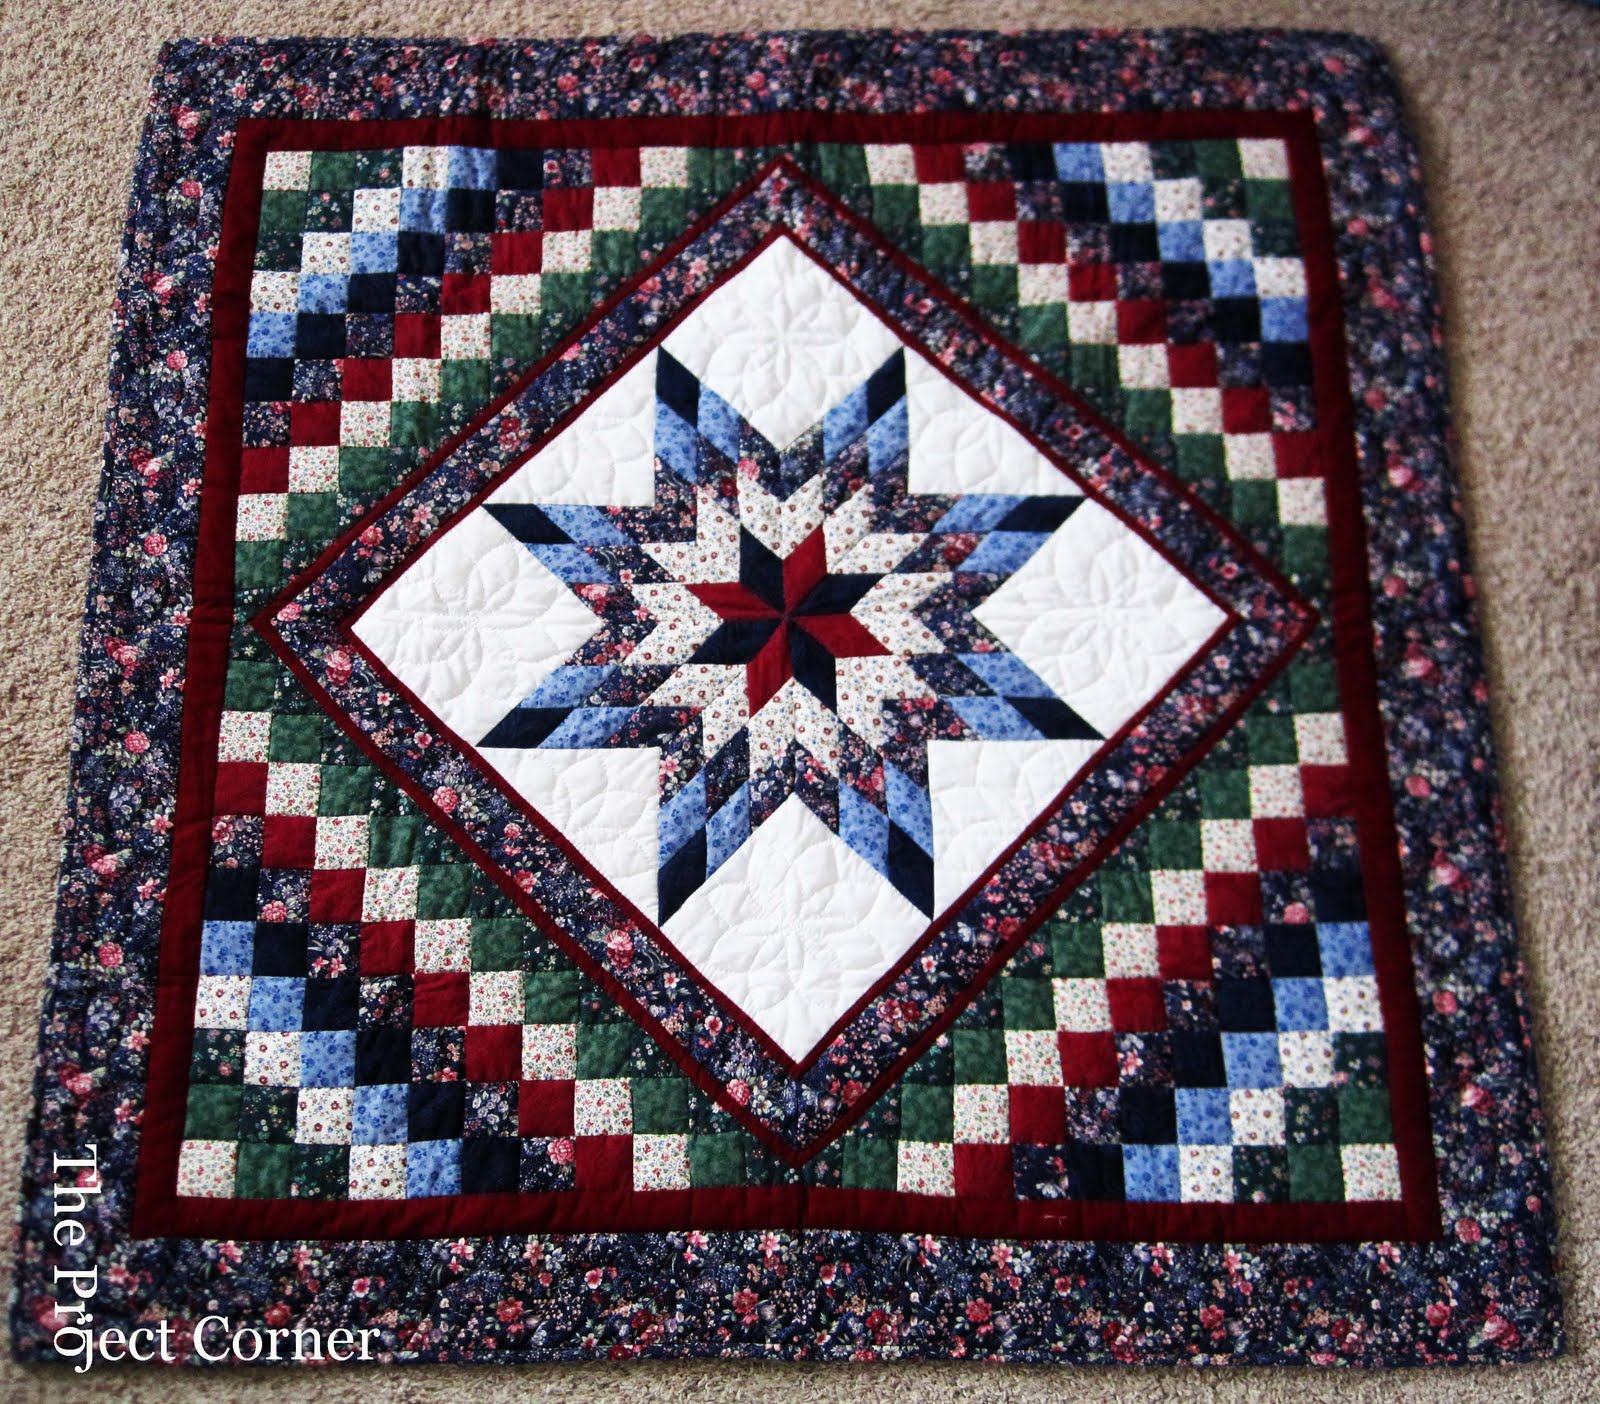 The Project Corner: Amish Quilt